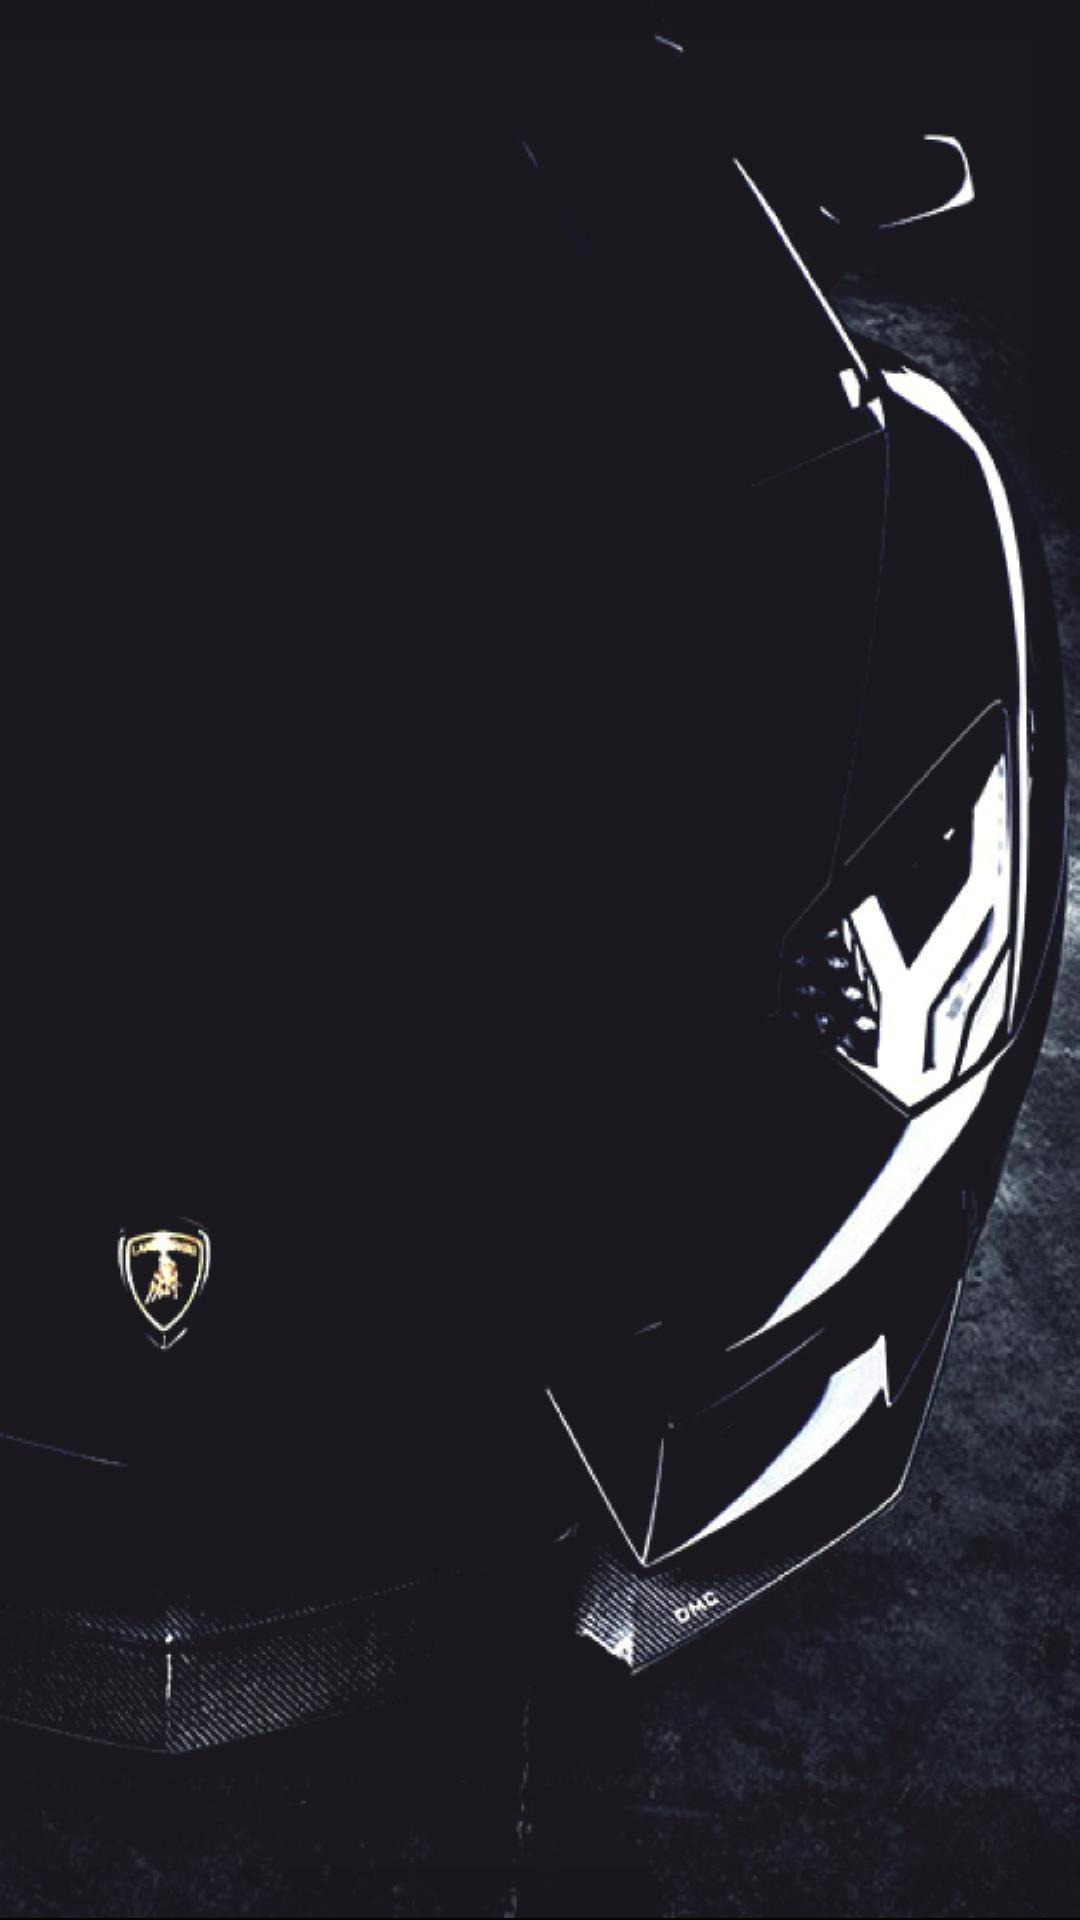 Res: 1080x1920, A Lamborghini In Black Mobile Hd Wallpaper High Quality For Phones Vactual